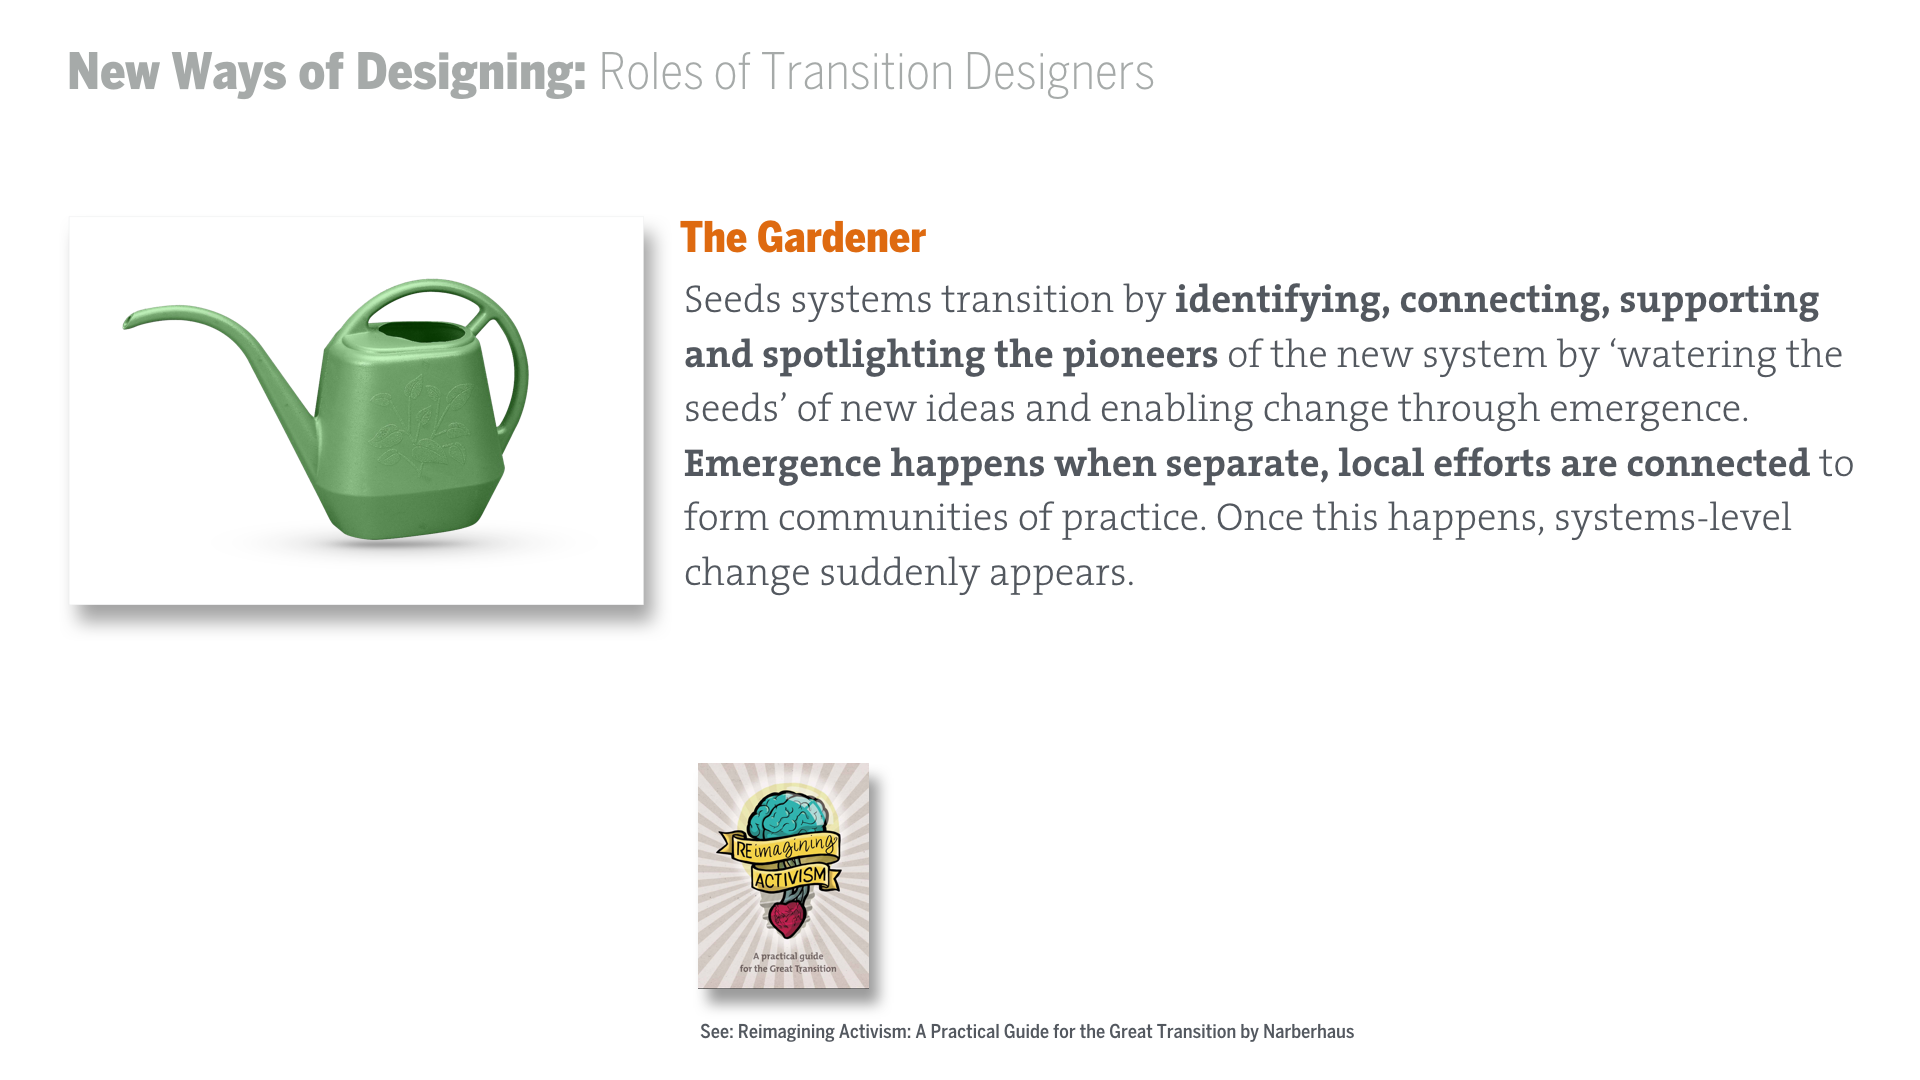 Below Are Five Potential Modalities Of Transition Designing, Inspired By  The Booklet Reimagining Activism: A Practical Guide For The Great  Transition By ...